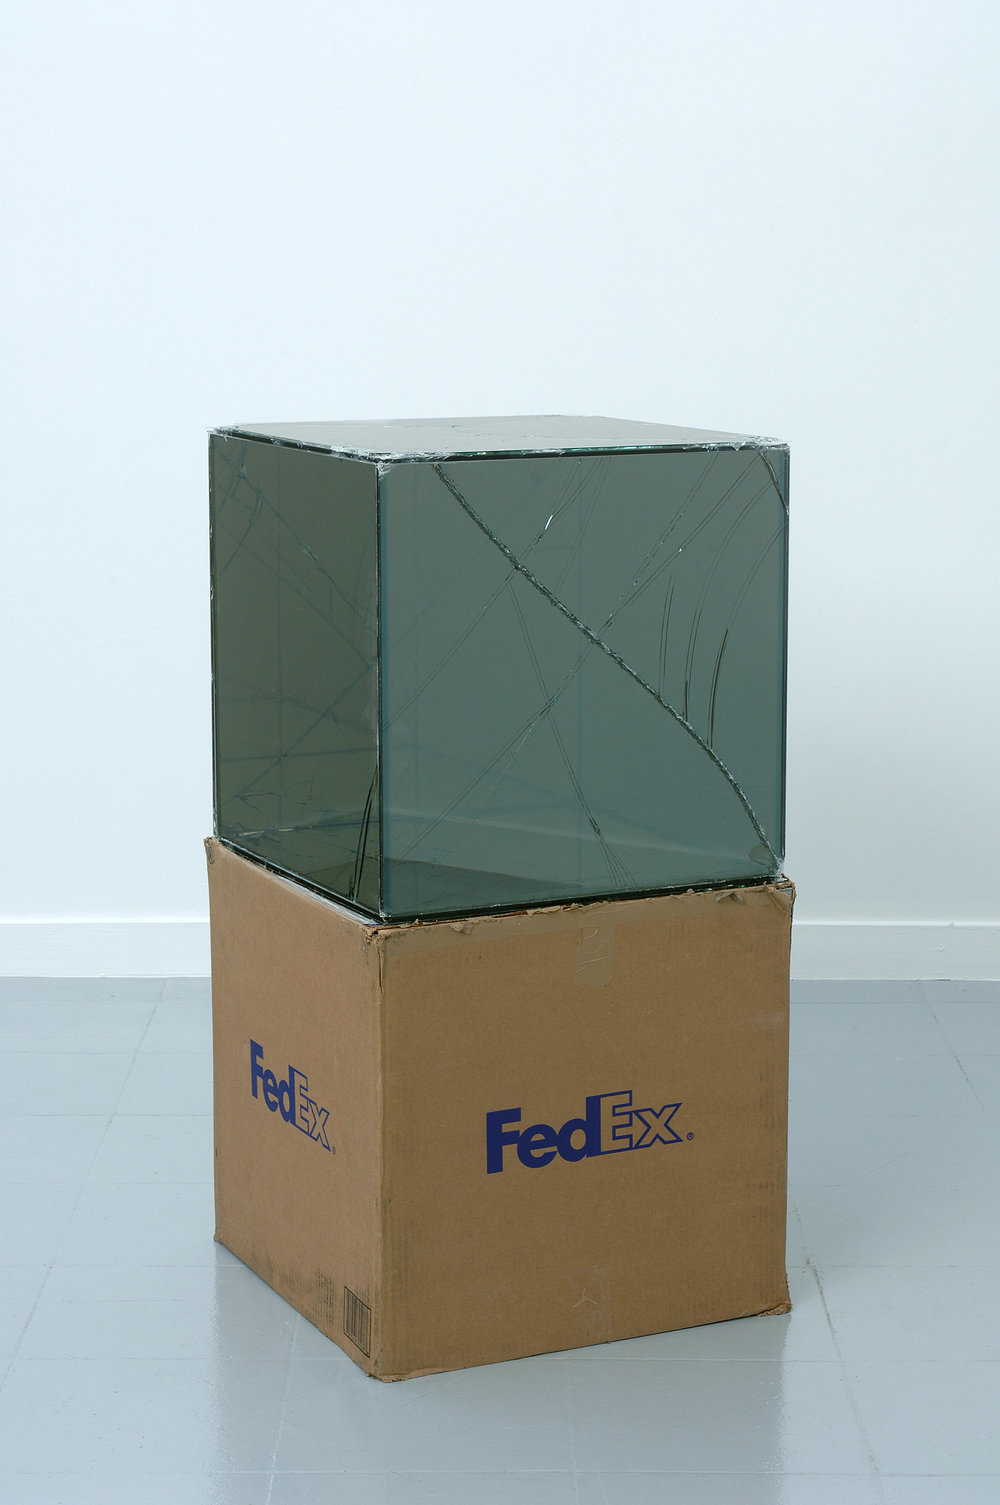 FedEx® Large Kraft Box  © 2005 FEDEX 330508 REV 10/05 SSCC, International Priority, Los Angeles–Brussels trk#865282057942, October 27–30, 2008   2008–  Laminated Mirropane, FedEx shipping box, accrued FedEx shipping and tracking labels, silicone, metal, and tape  20 x 20 x 20 inches   FedEx Glass Works, 2007–    Industrial Pictures, 2008